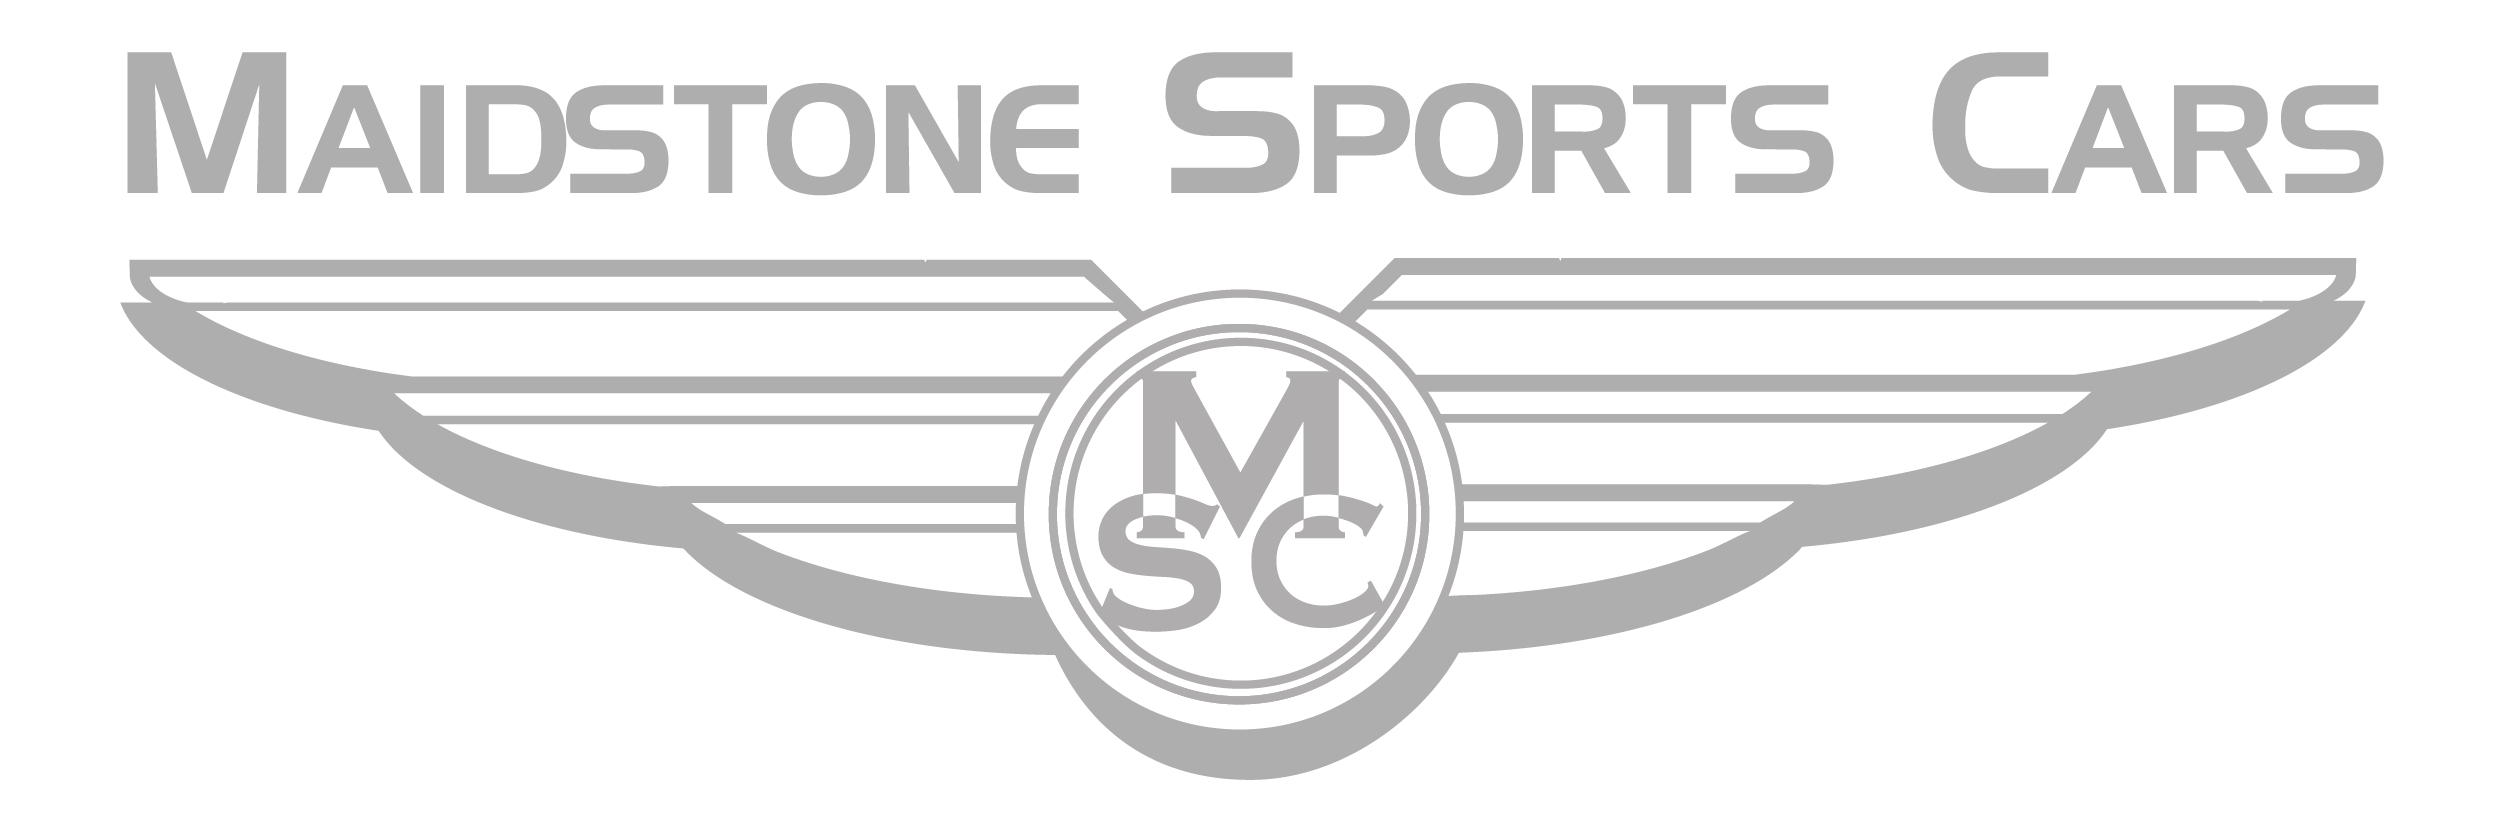 Maidstone Sports Cars Limited